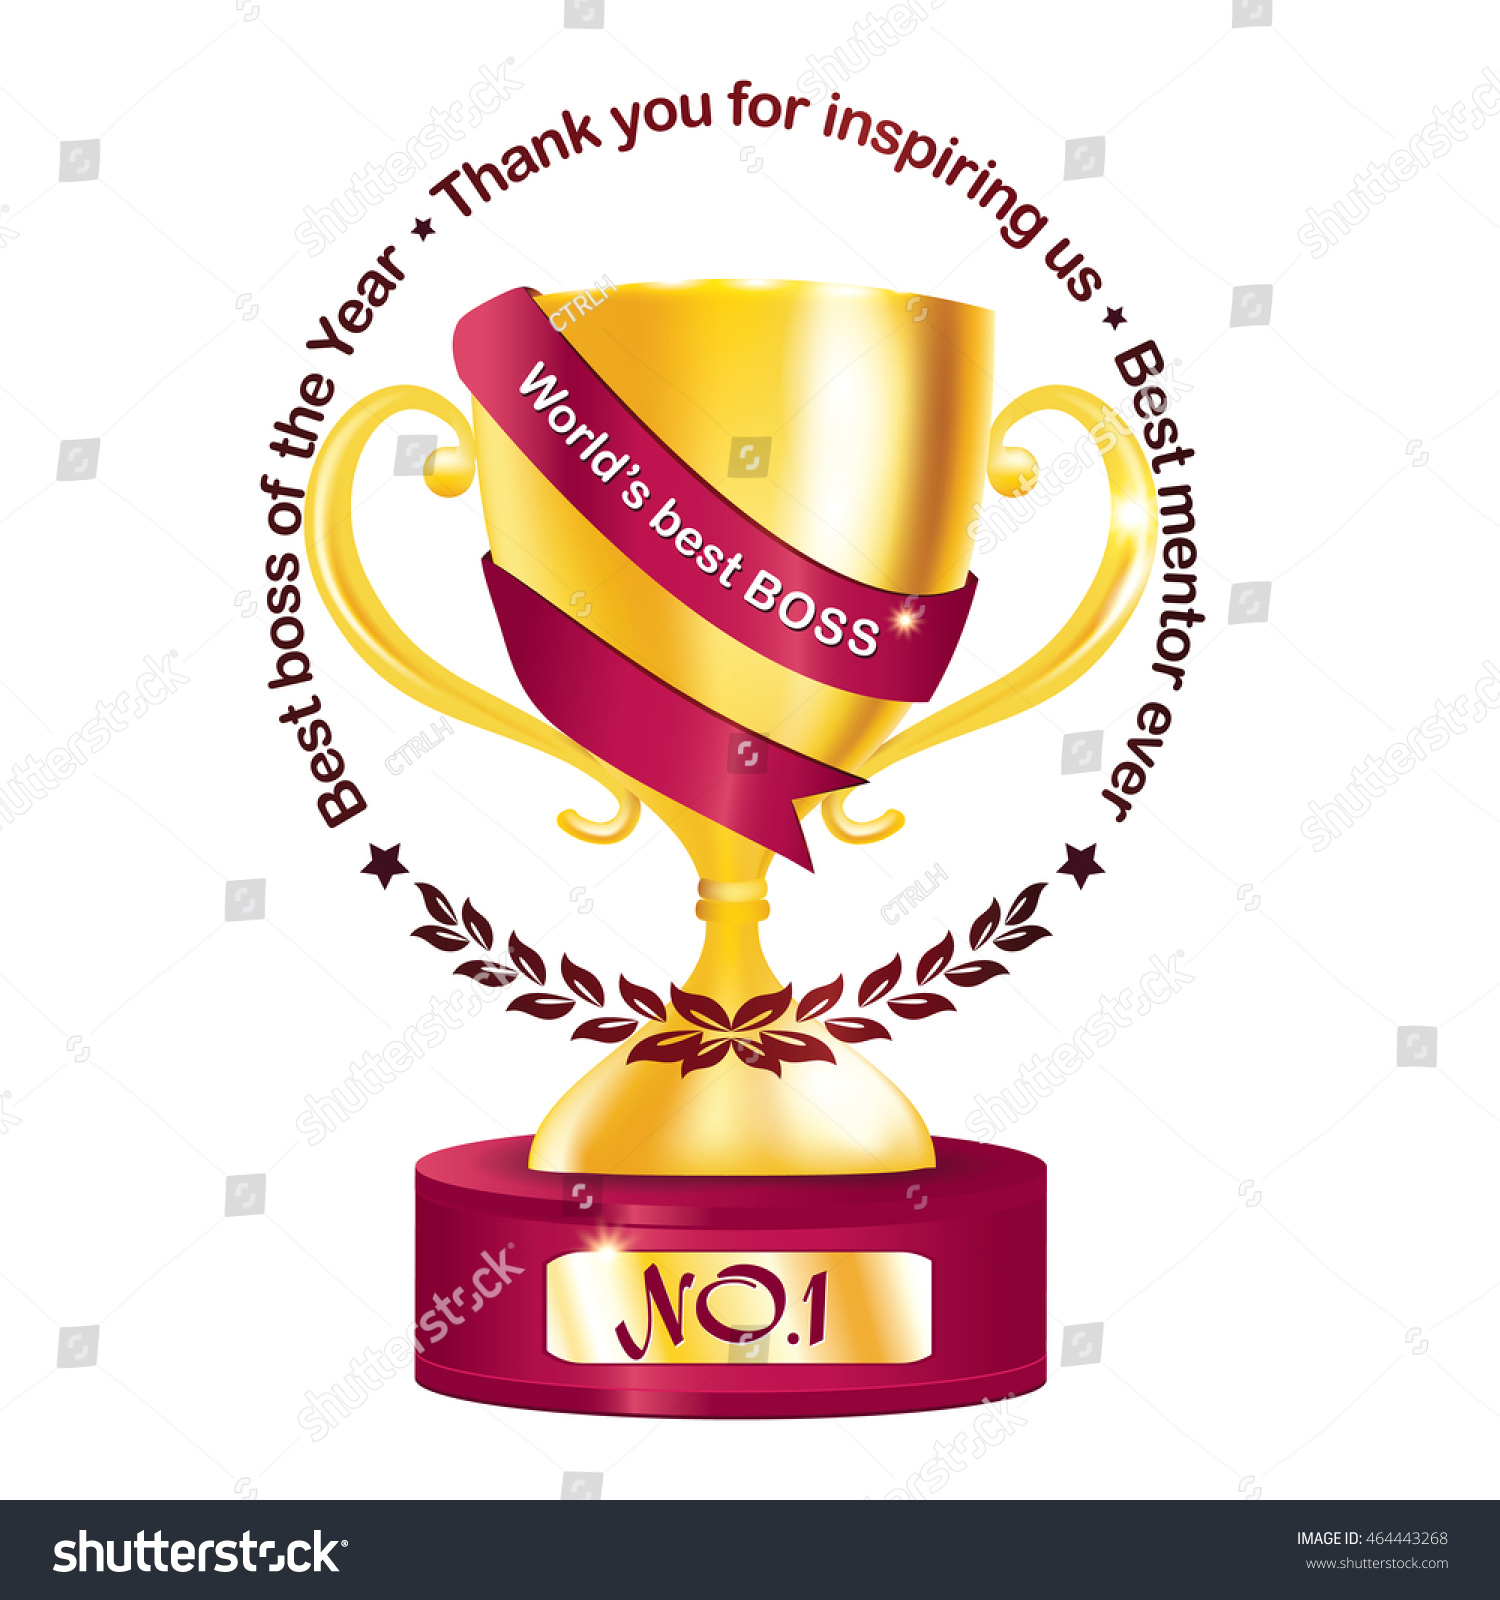 best boss year thank you inspiring stock vector 464443268 best boss of the year thank you for inspiring us best mentor ever